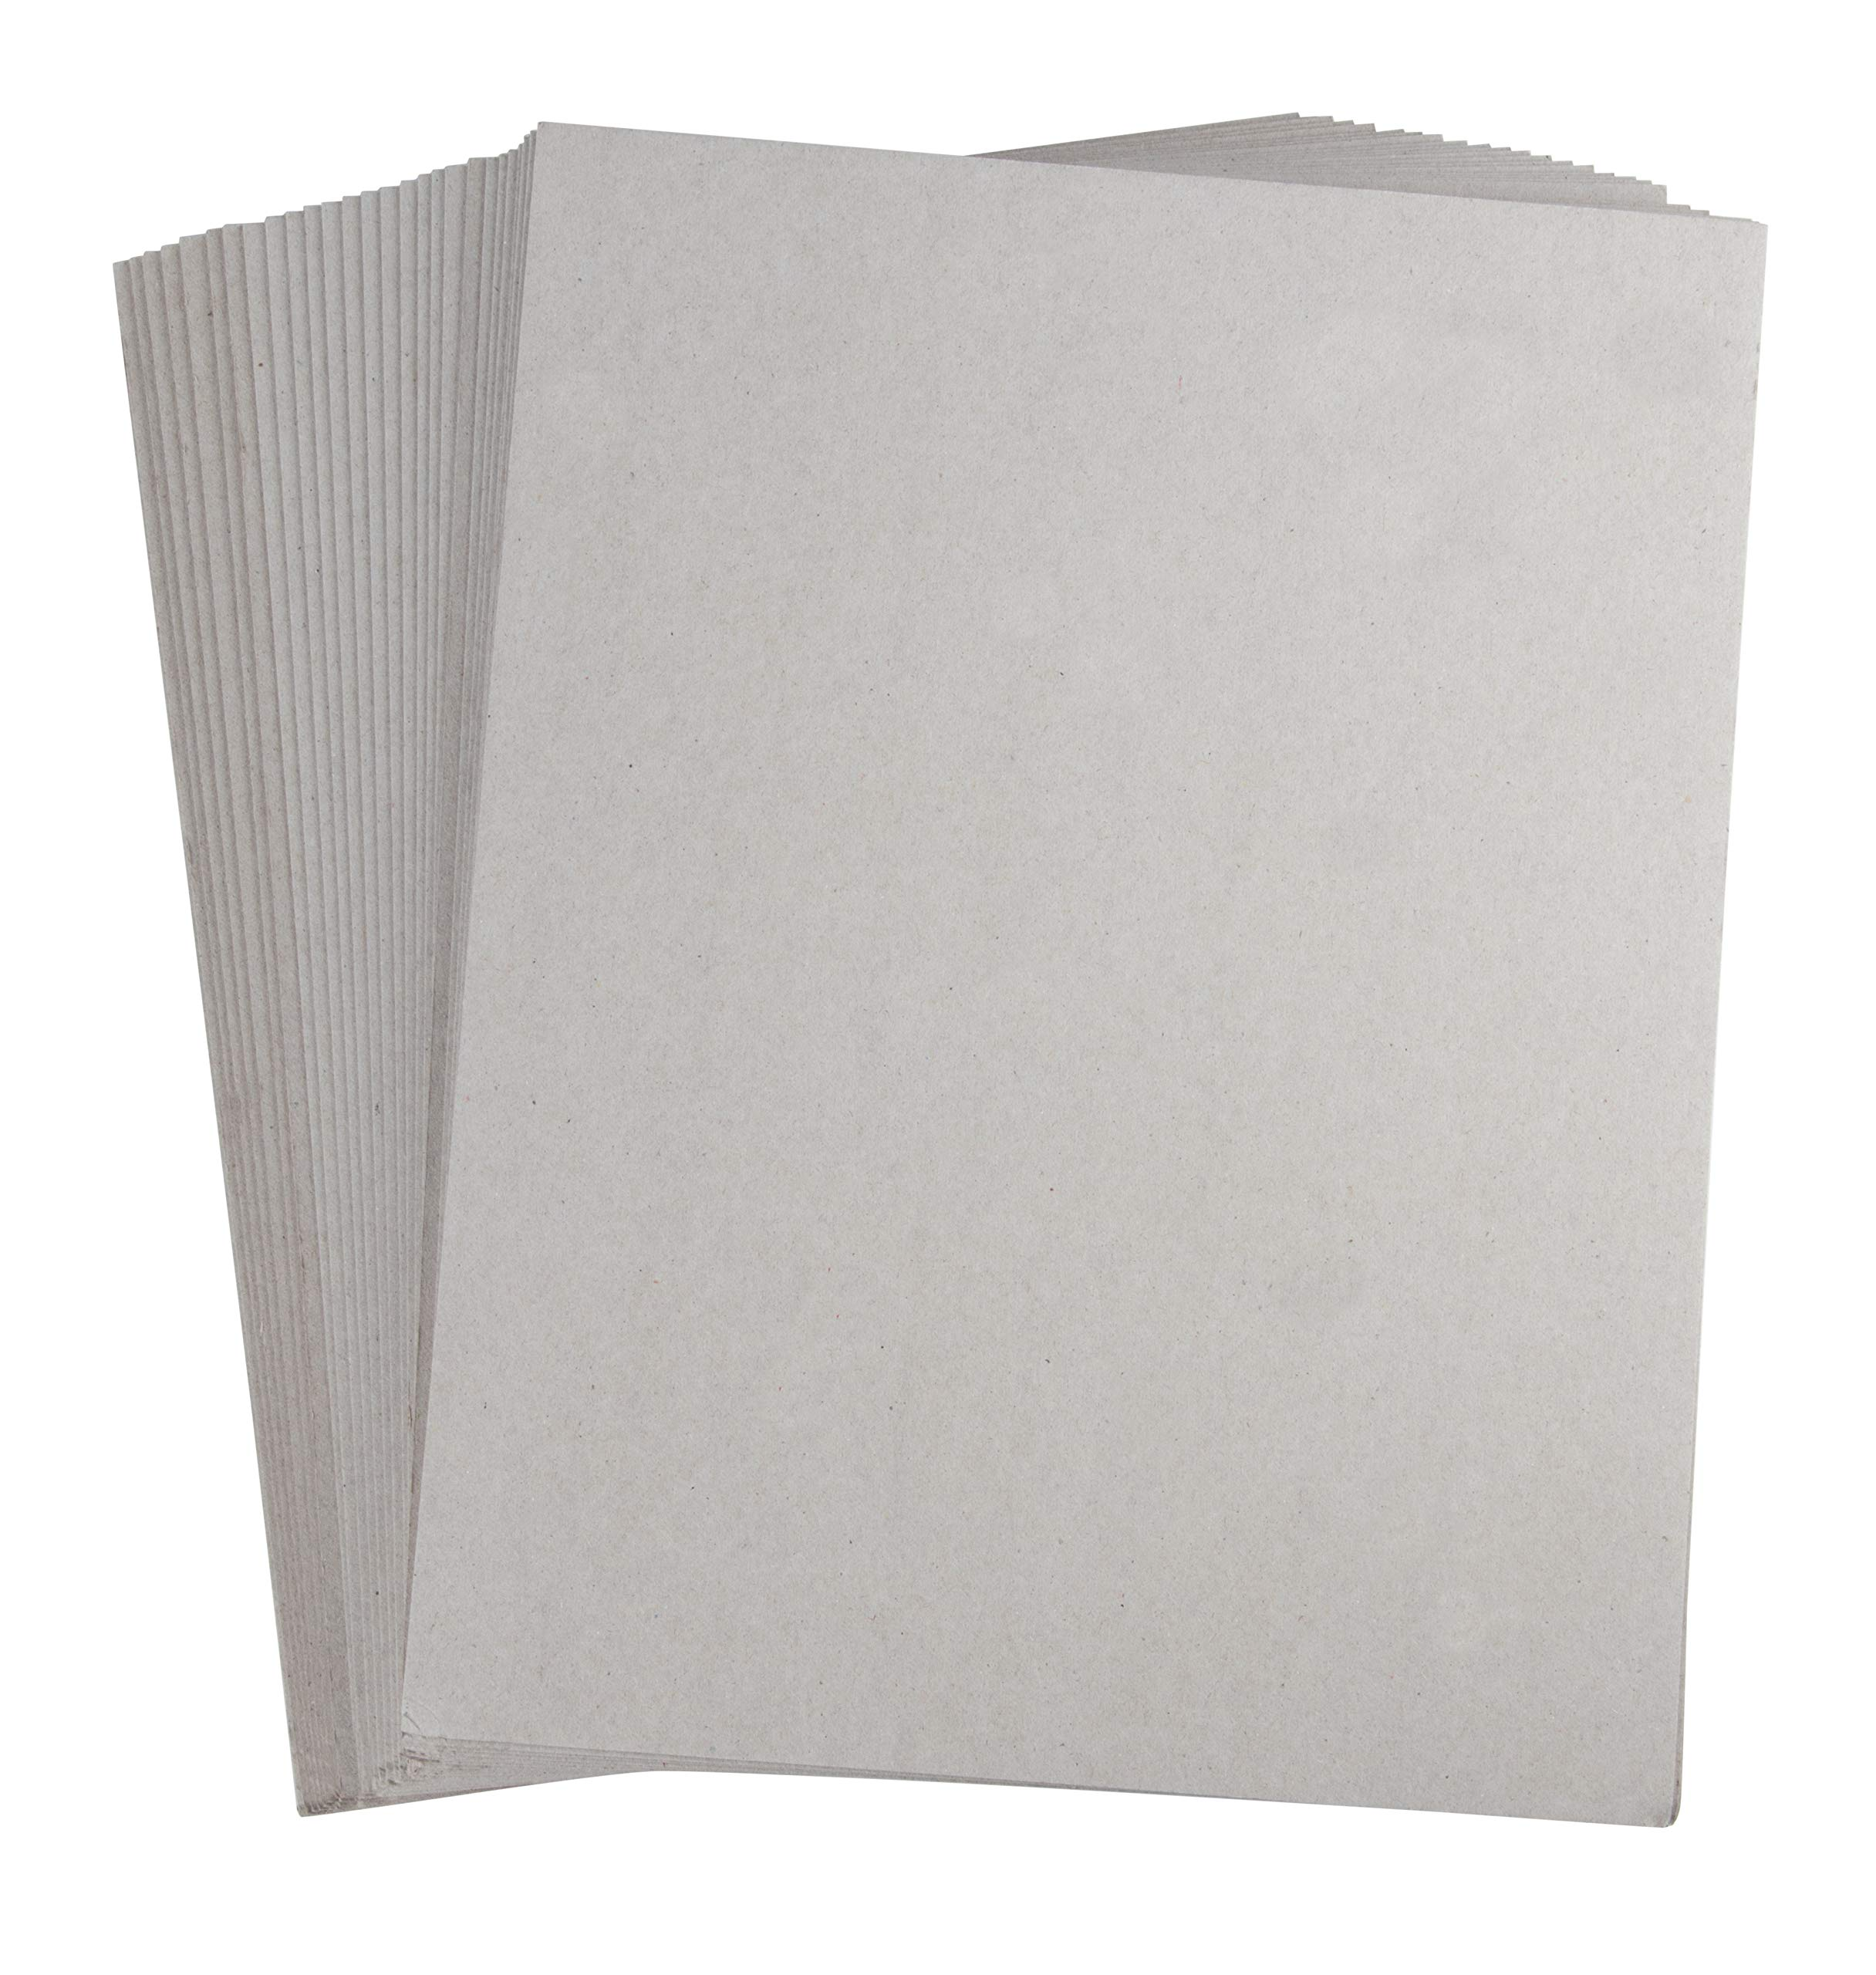 Chipboard Sheets – 100-Pack Chip Boards, Cardboard Papers for Scrapbooking, Art and Craft, Grey, 8.5 x 11 Inches, 0.045 Inches Thickness